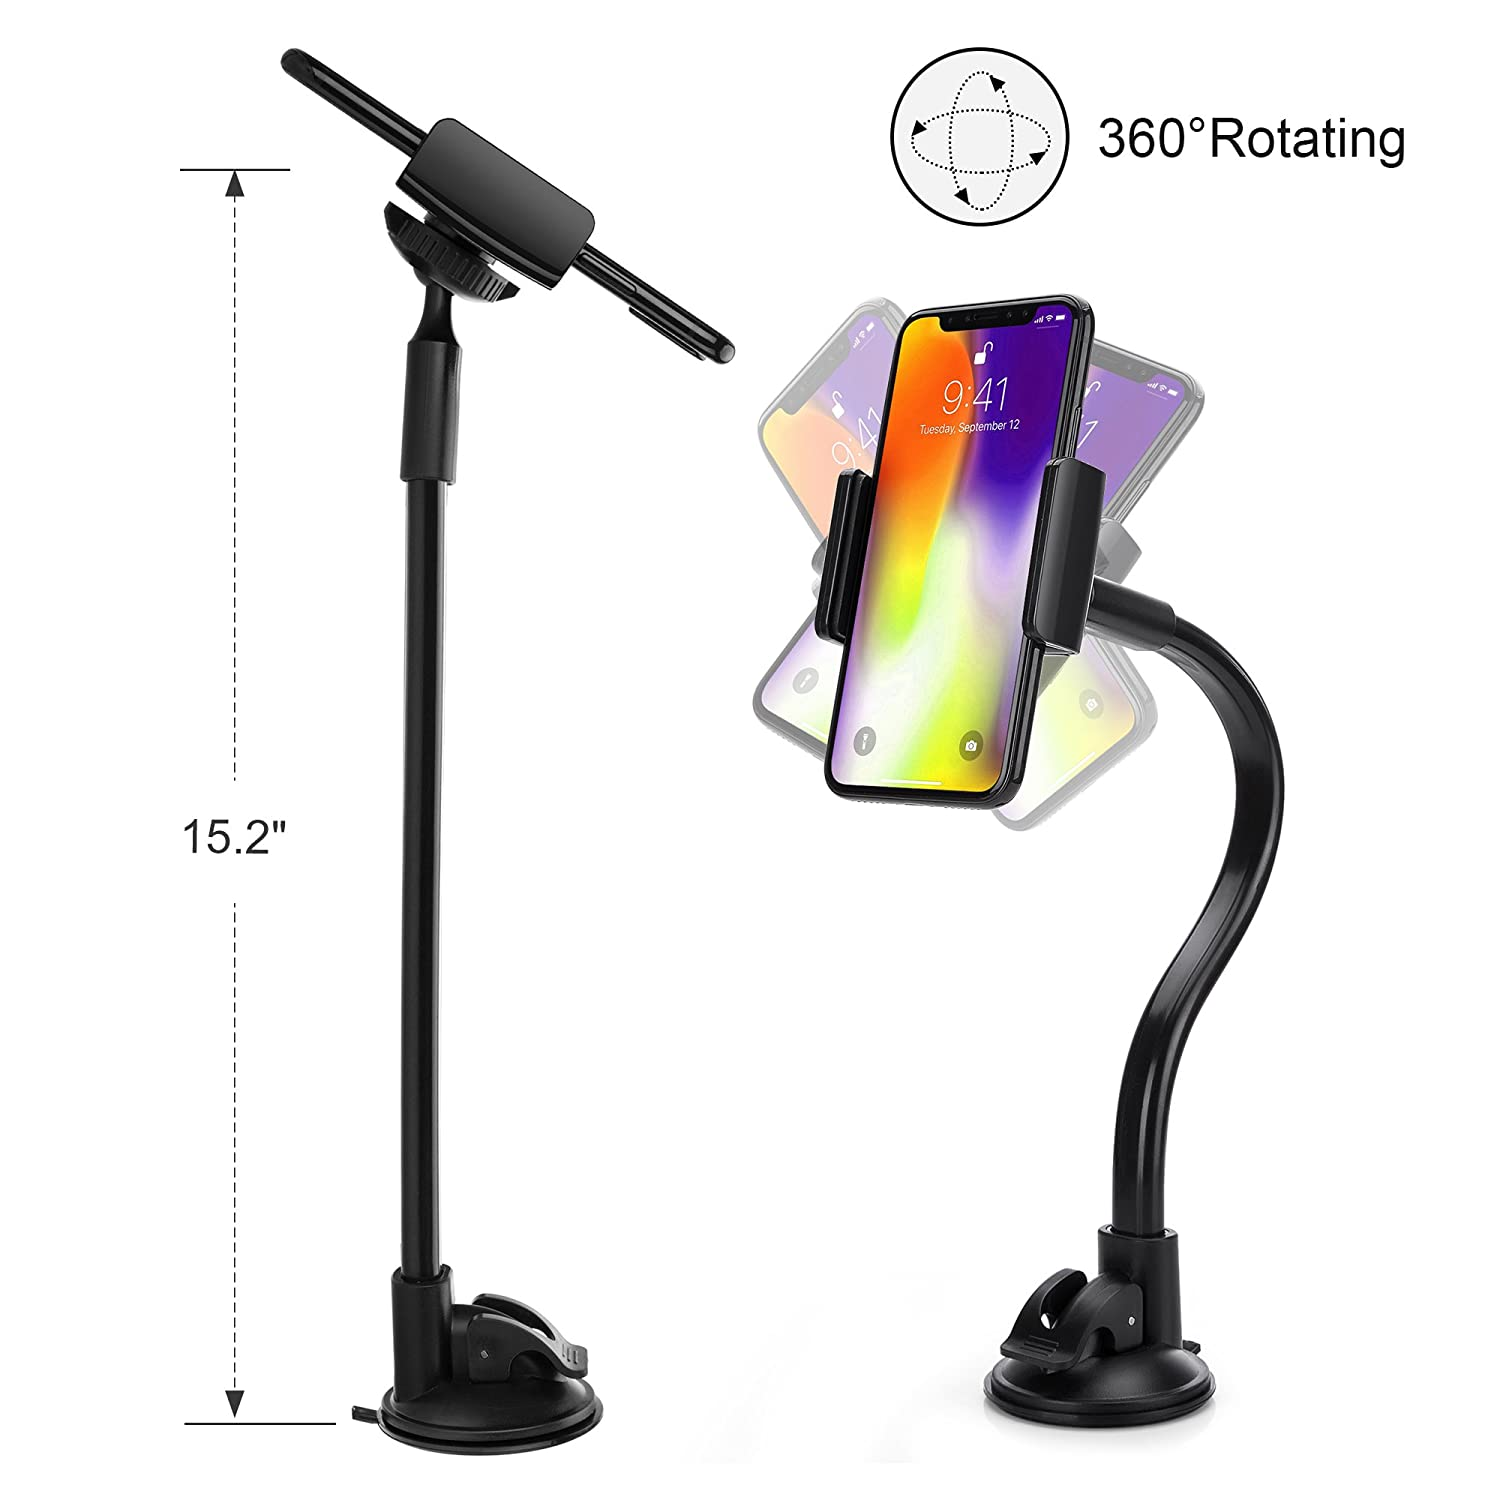 3.5-8 inch AboveTEK Long Arm Universal Car Phone Mount Holder Easily Fits iPhone 5//6//6S Plus Windshield // Dashboard Smartphone Cradle with Two Clamps - Secure Suction Cup CH200A iPad Tablet Samsung